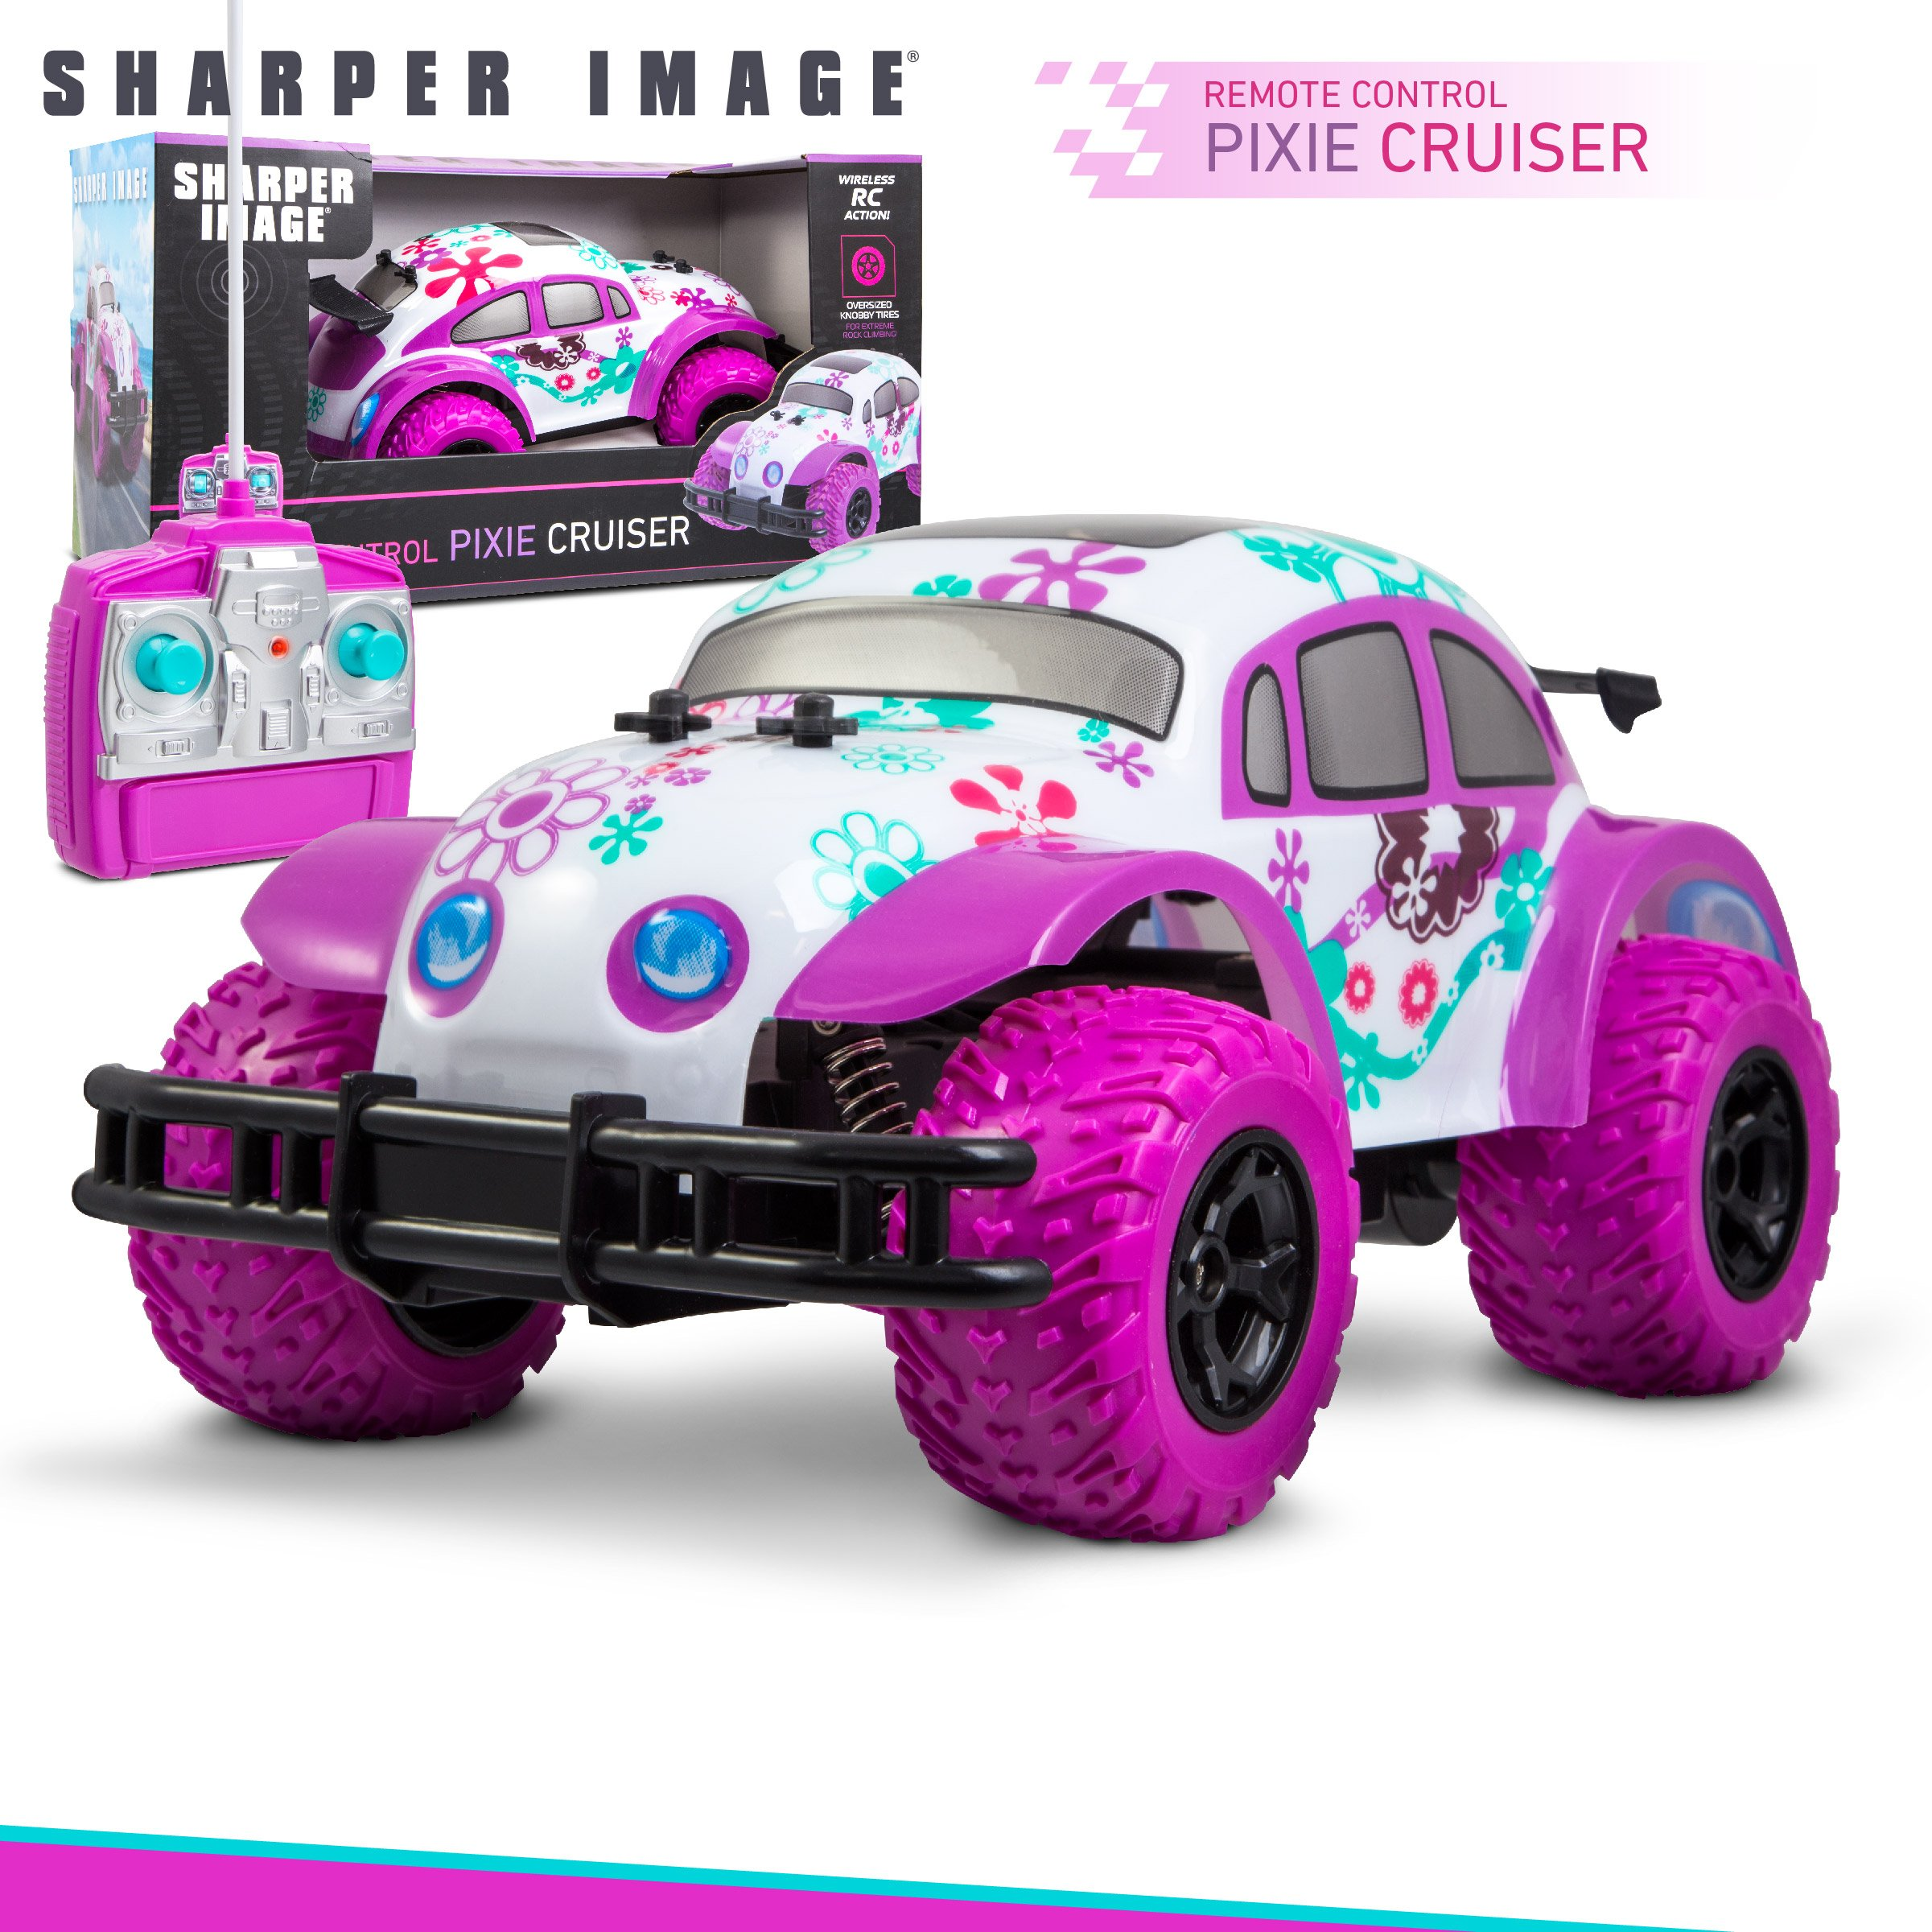 SHARPER IMAGE Pixie Cruiser Pink and Purple RC Remote Control Car Toy for Girls with Off-Road Grip Tires; Princess Style Big Buggy Crawler w/ Flowers Design and Shocks, Race Up to 5 MPH, Ages 6 Year + by Sharper Image (Image #7)